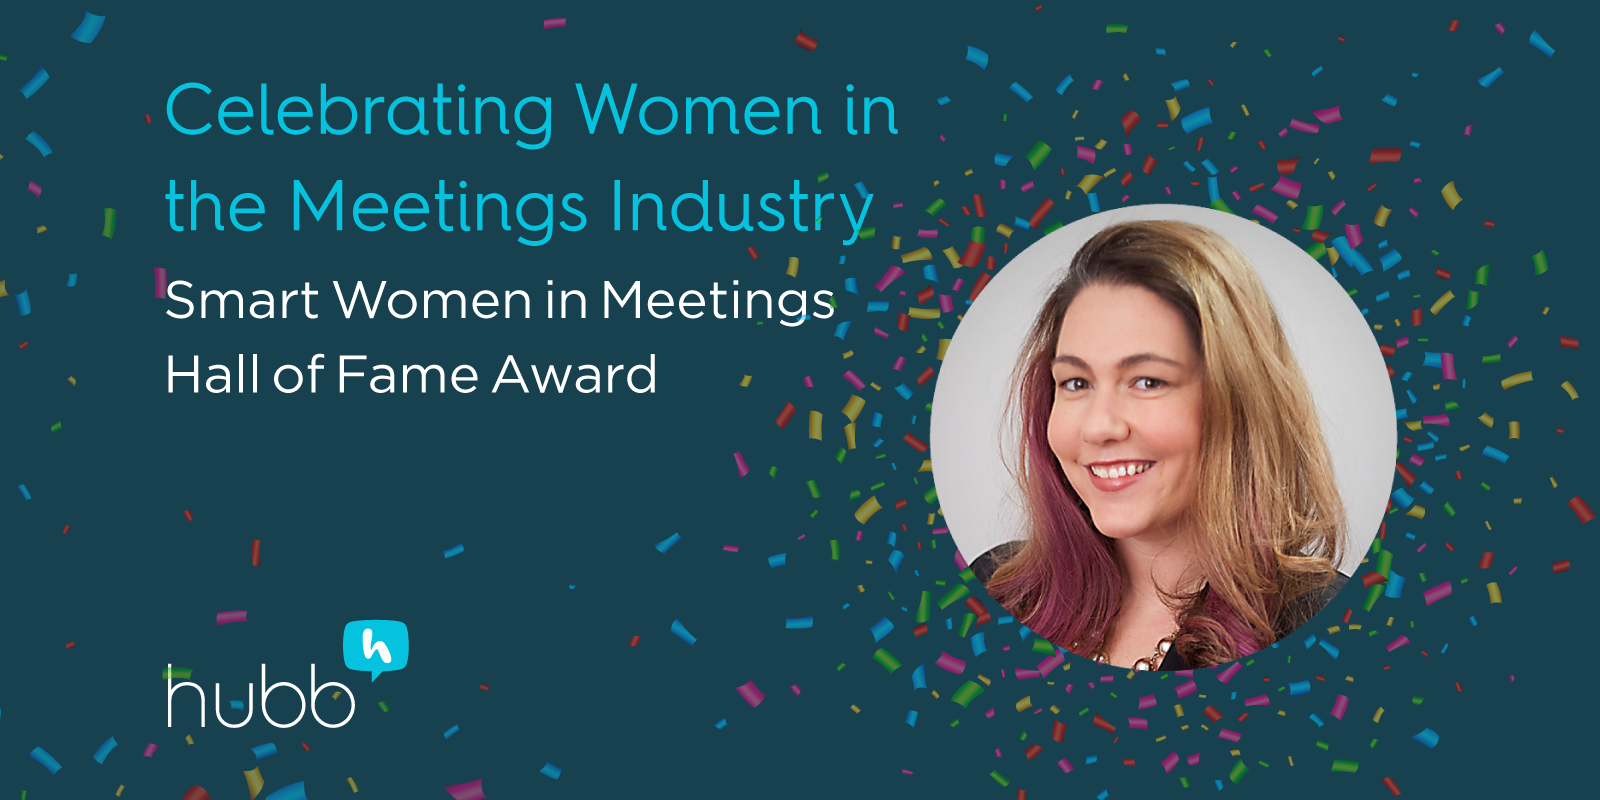 Celebrating Women in the Meetings Industry